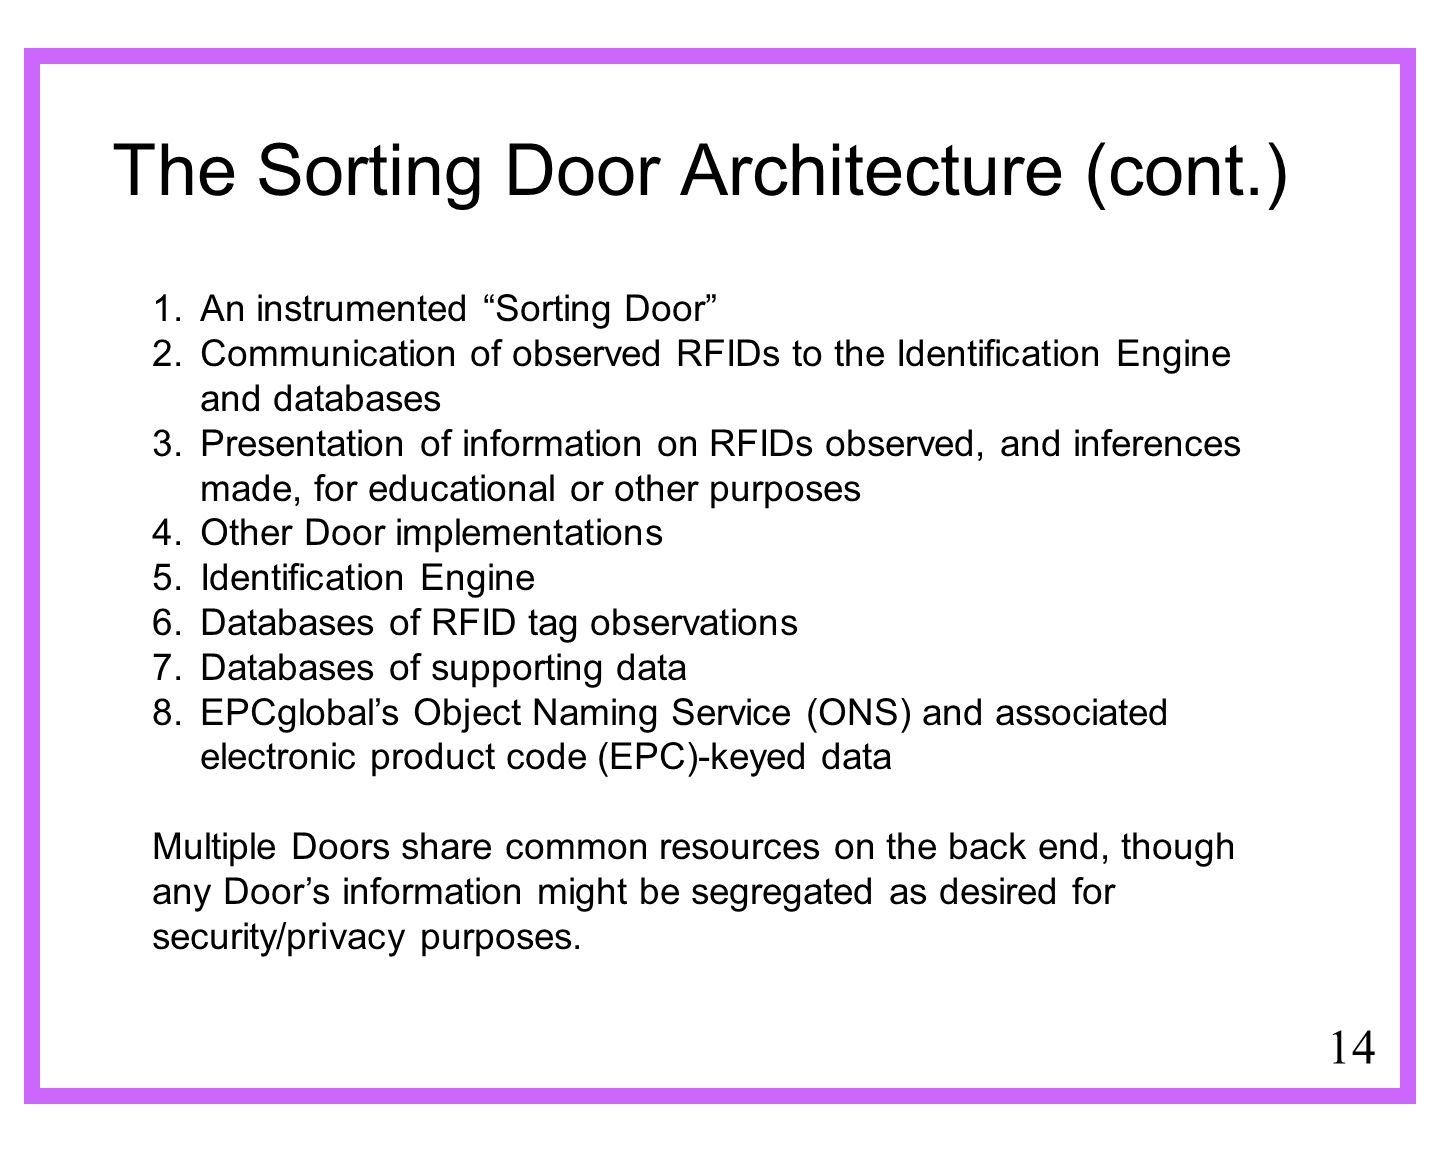 14 The Sorting Door Architecture (cont.) 1.An instrumented Sorting Door 2.Communication of observed RFIDs to the Identification Engine and databases 3.Presentation of information on RFIDs observed, and inferences made, for educational or other purposes 4.Other Door implementations 5.Identification Engine 6.Databases of RFID tag observations 7.Databases of supporting data 8.EPCglobals Object Naming Service (ONS) and associated electronic product code (EPC)-keyed data Multiple Doors share common resources on the back end, though any Doors information might be segregated as desired for security/privacy purposes.